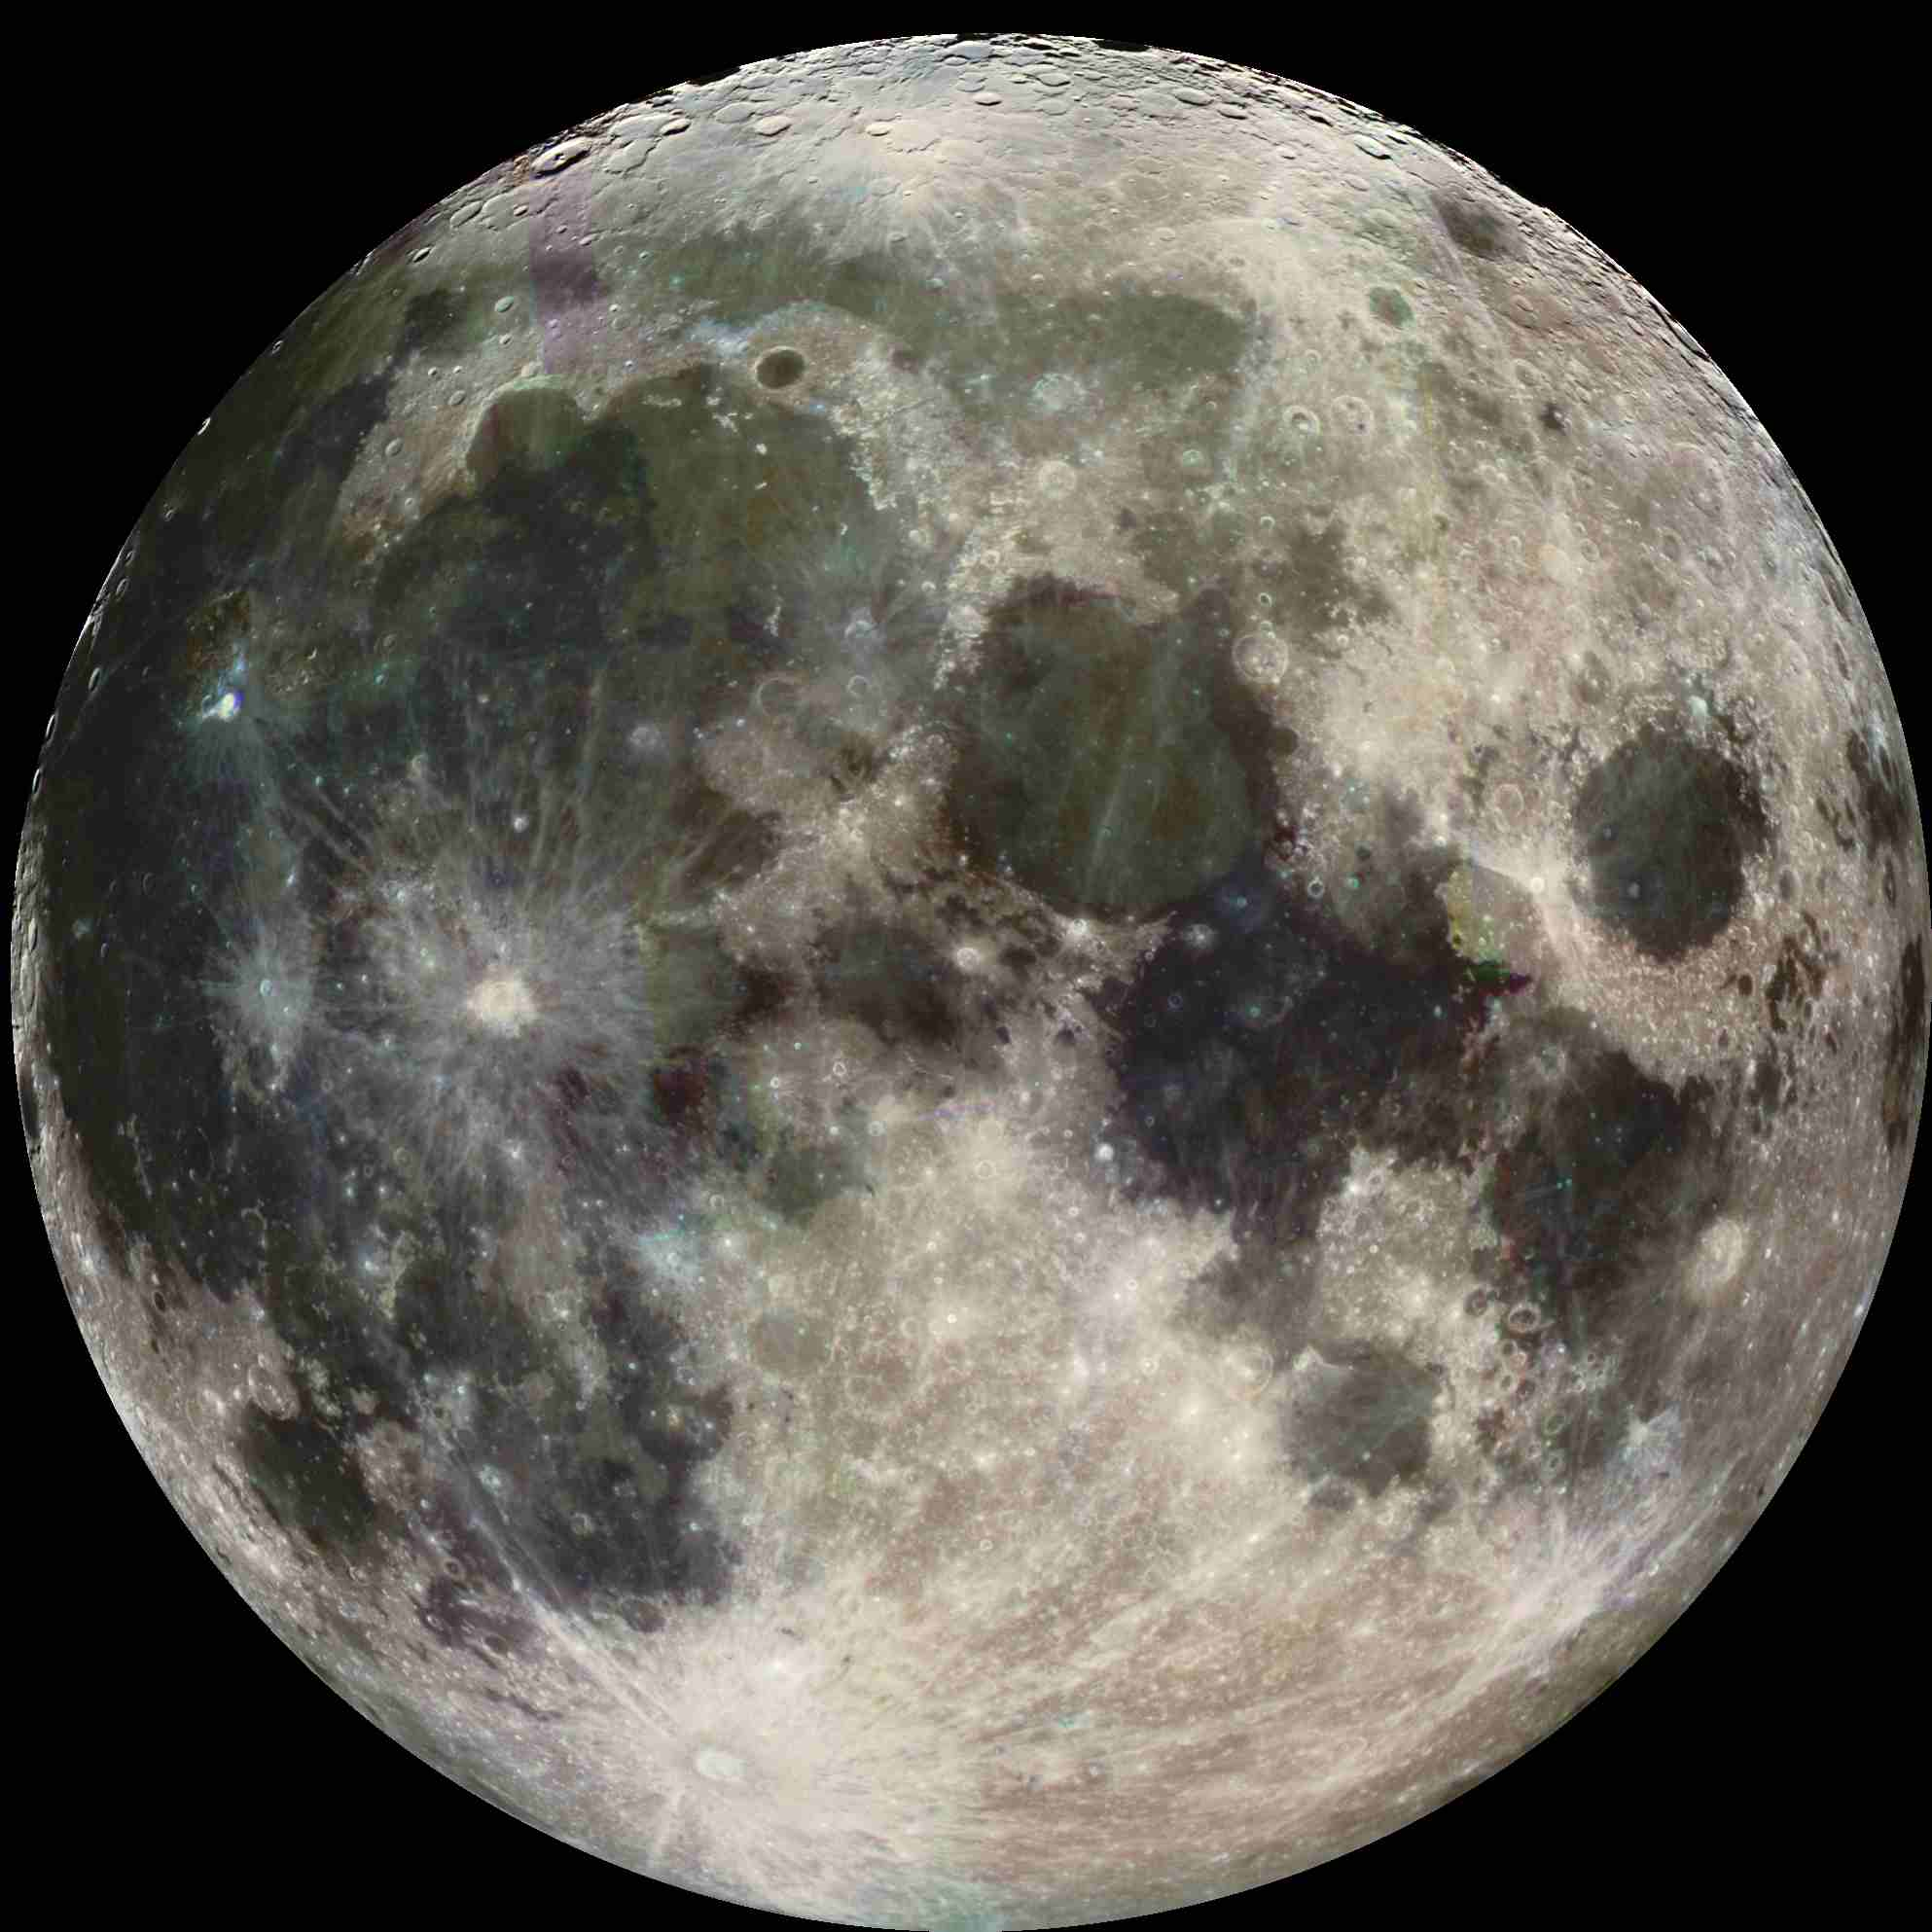 Pictures of the Moon - The Moon from Galileo's Perspective